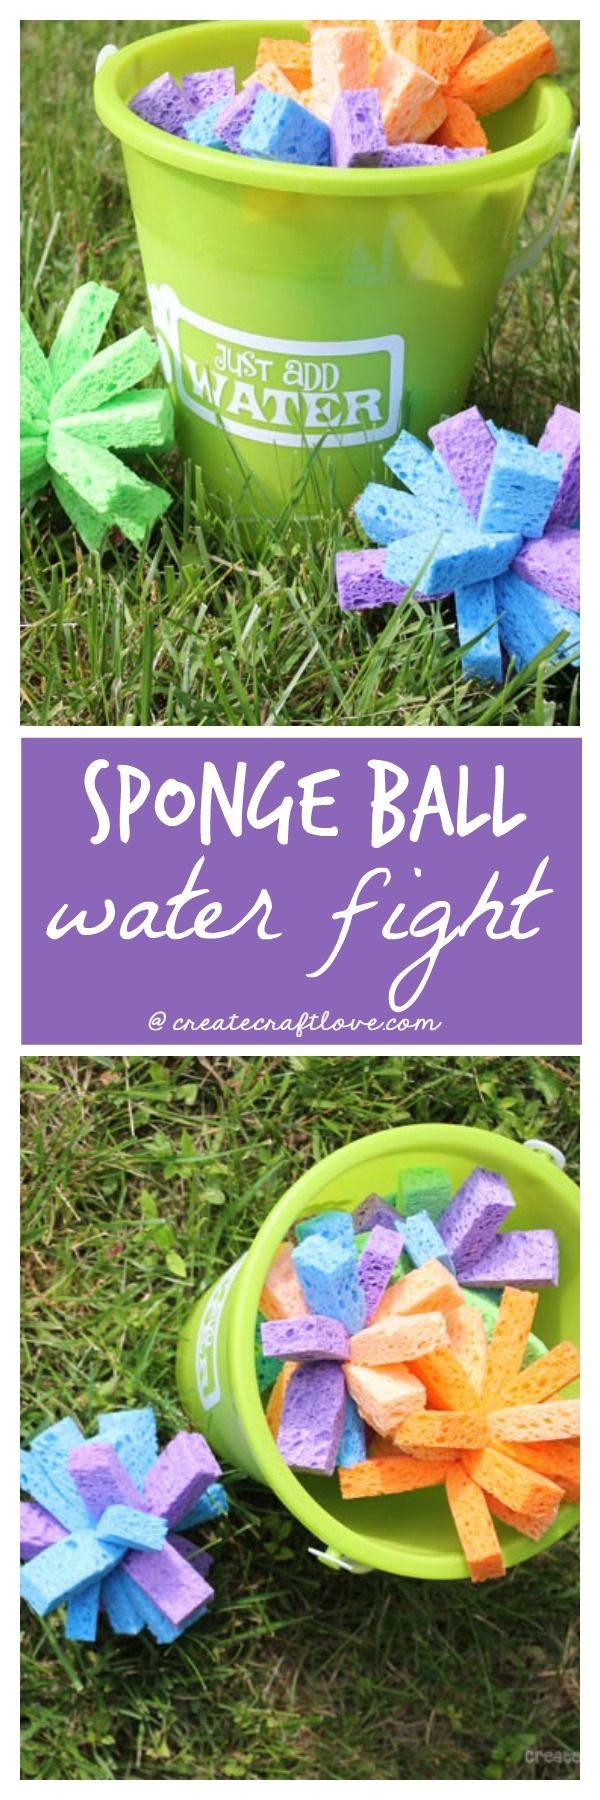 This Sponge Ball Water Fight will keep the kids entertained all summer! via createcraftlove.com